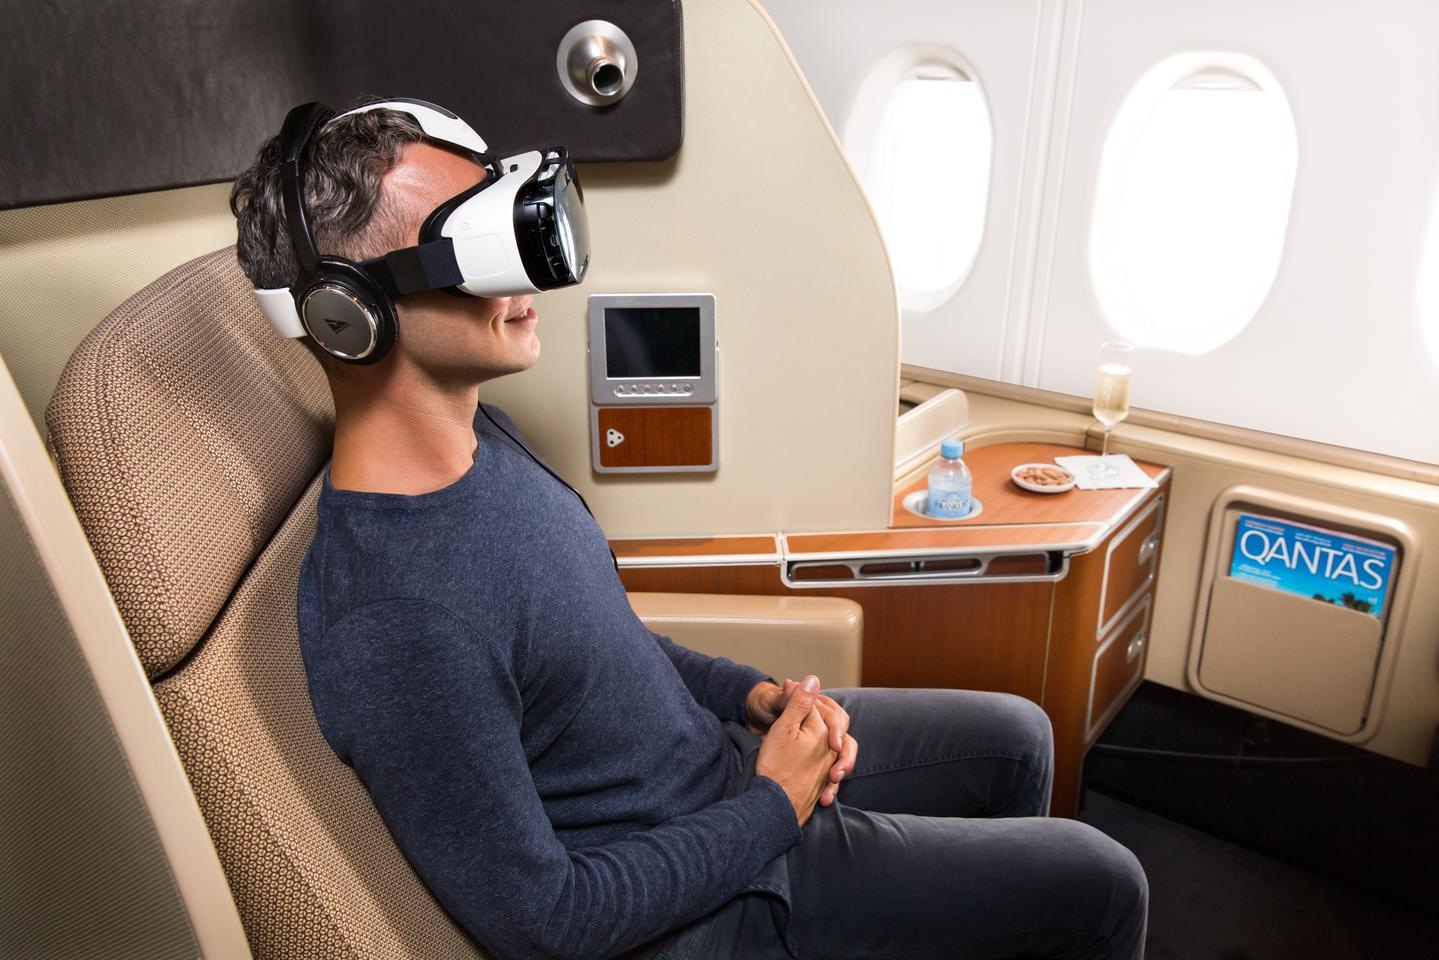 Qantas will soon be offering first-class passengers a virtual reality experience in midair